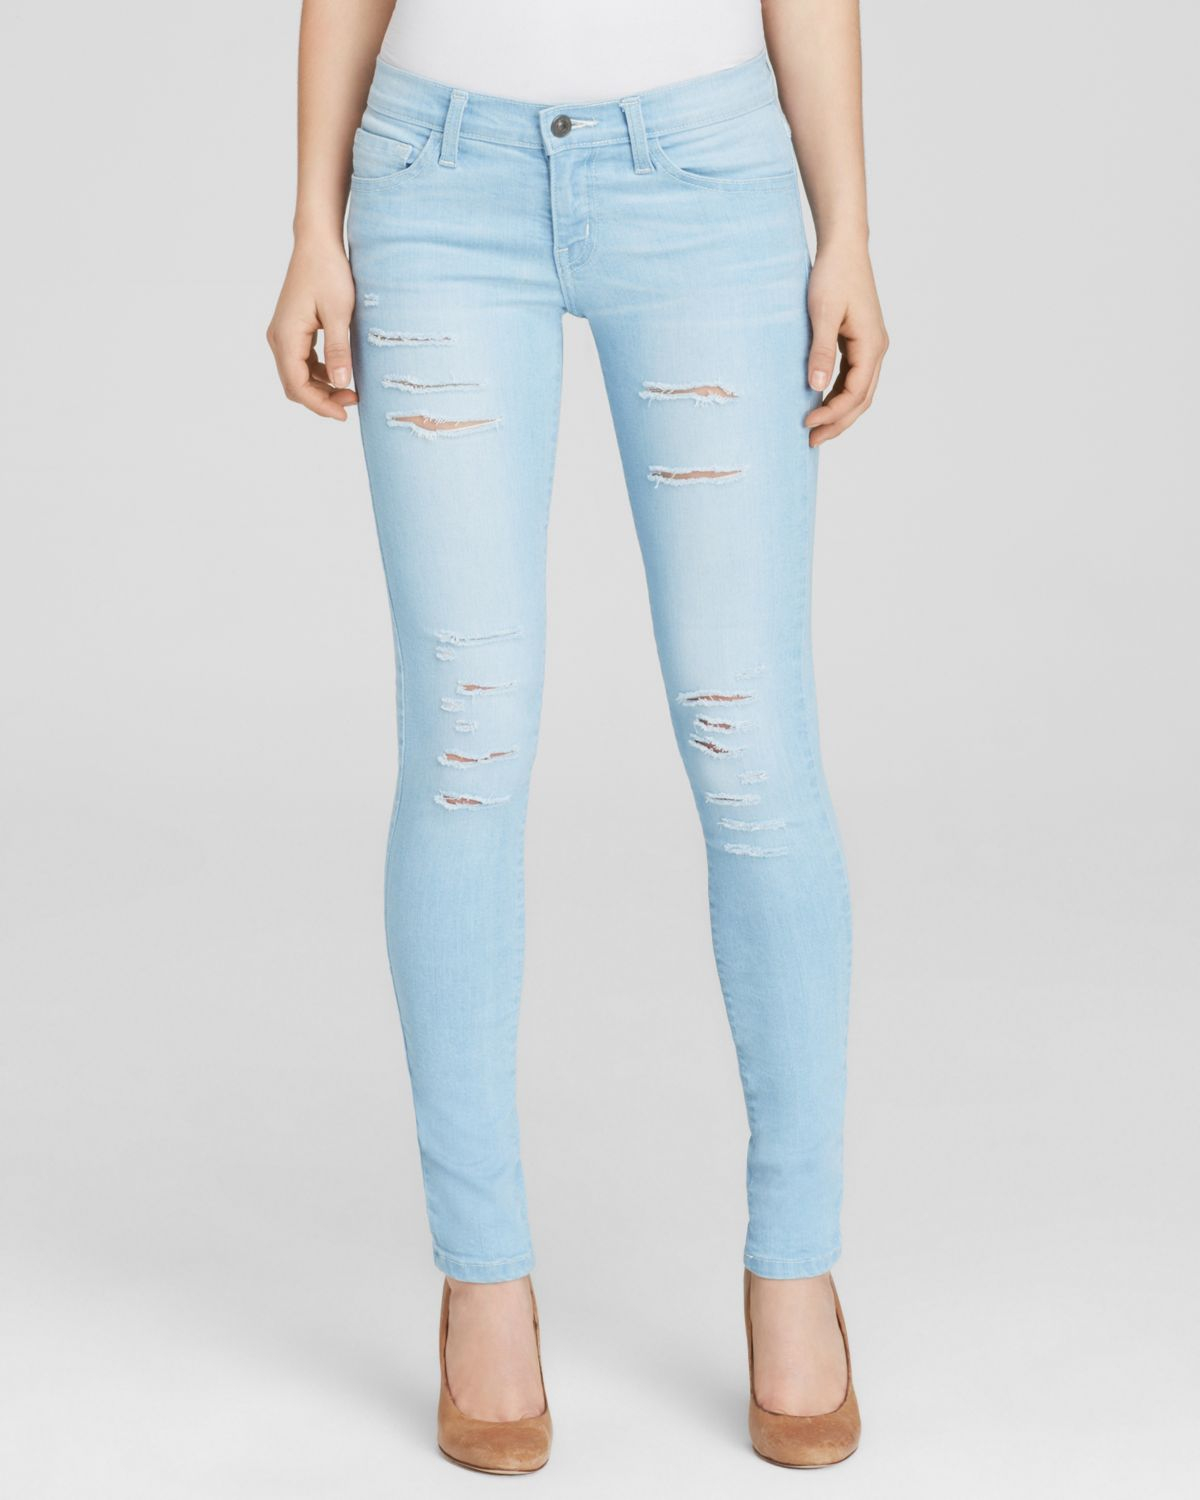 Flying monkey Jeans - Distressed Skinny In Light Wash in Blue | Lyst